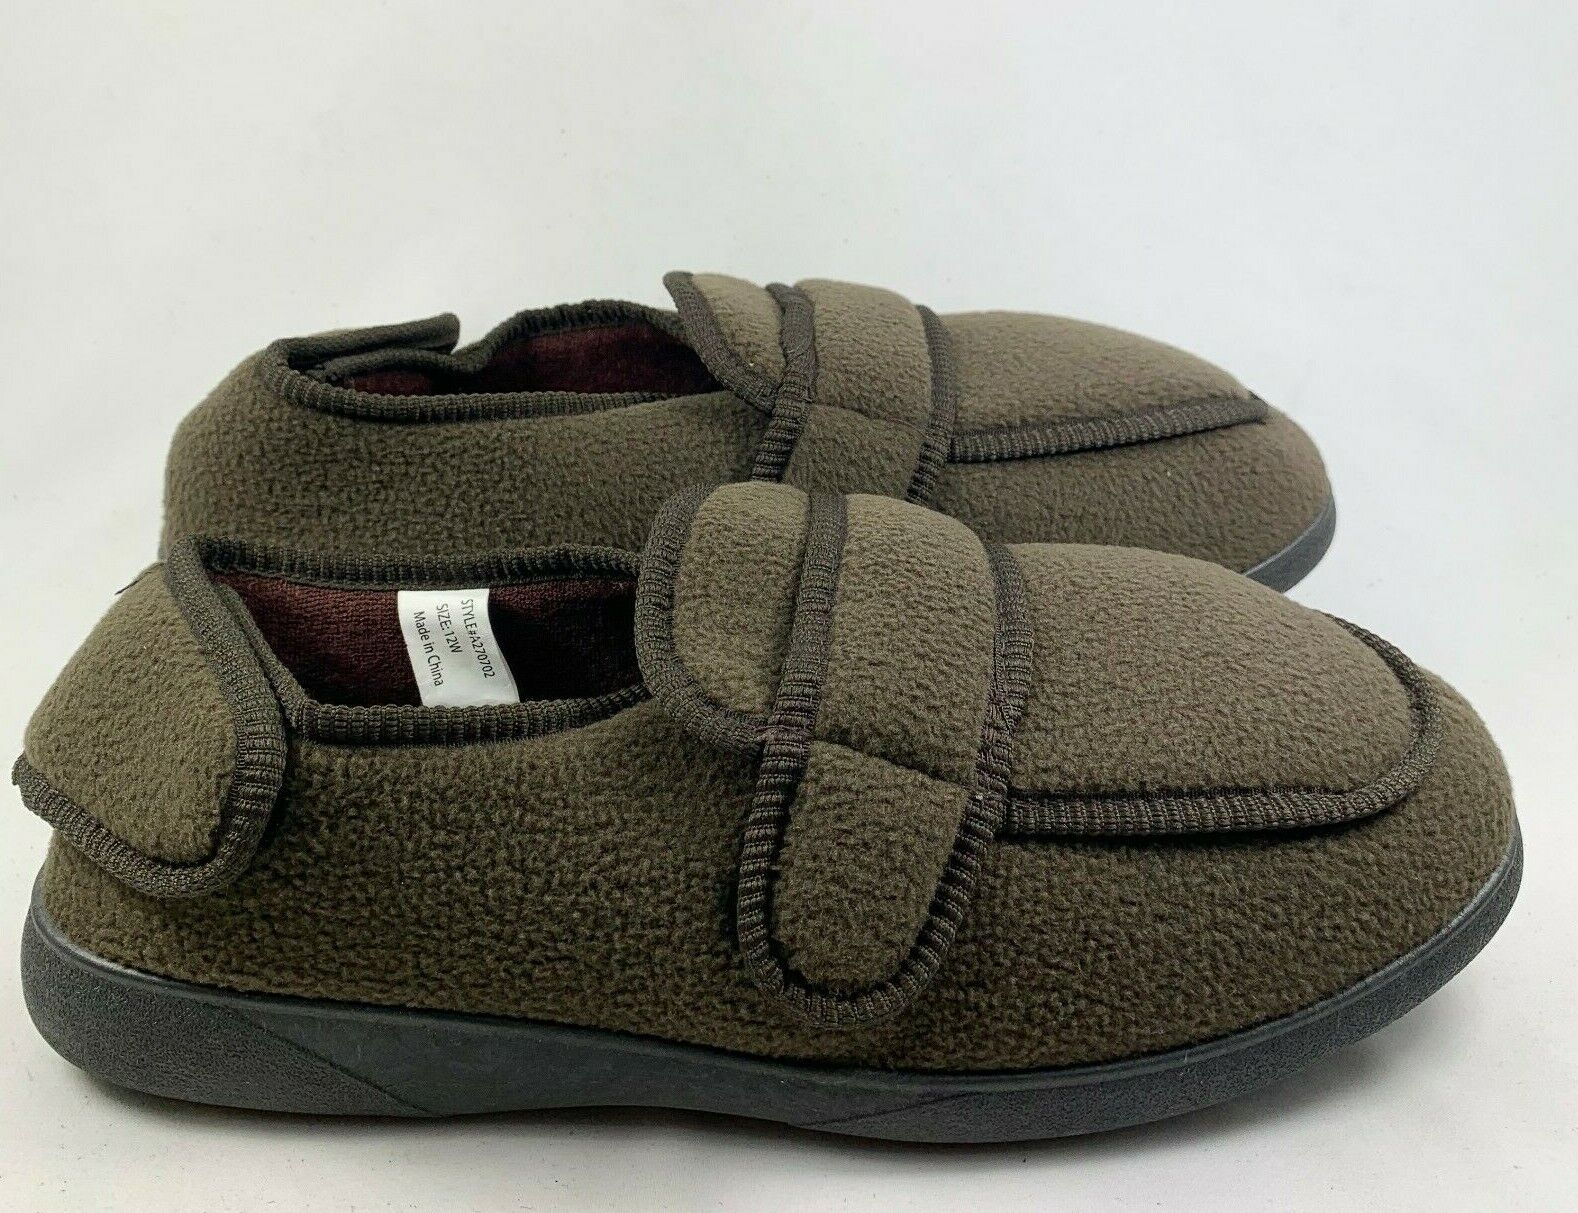 Gold Toe Men's Jude Orthopedic House Slippers Brown Size 12